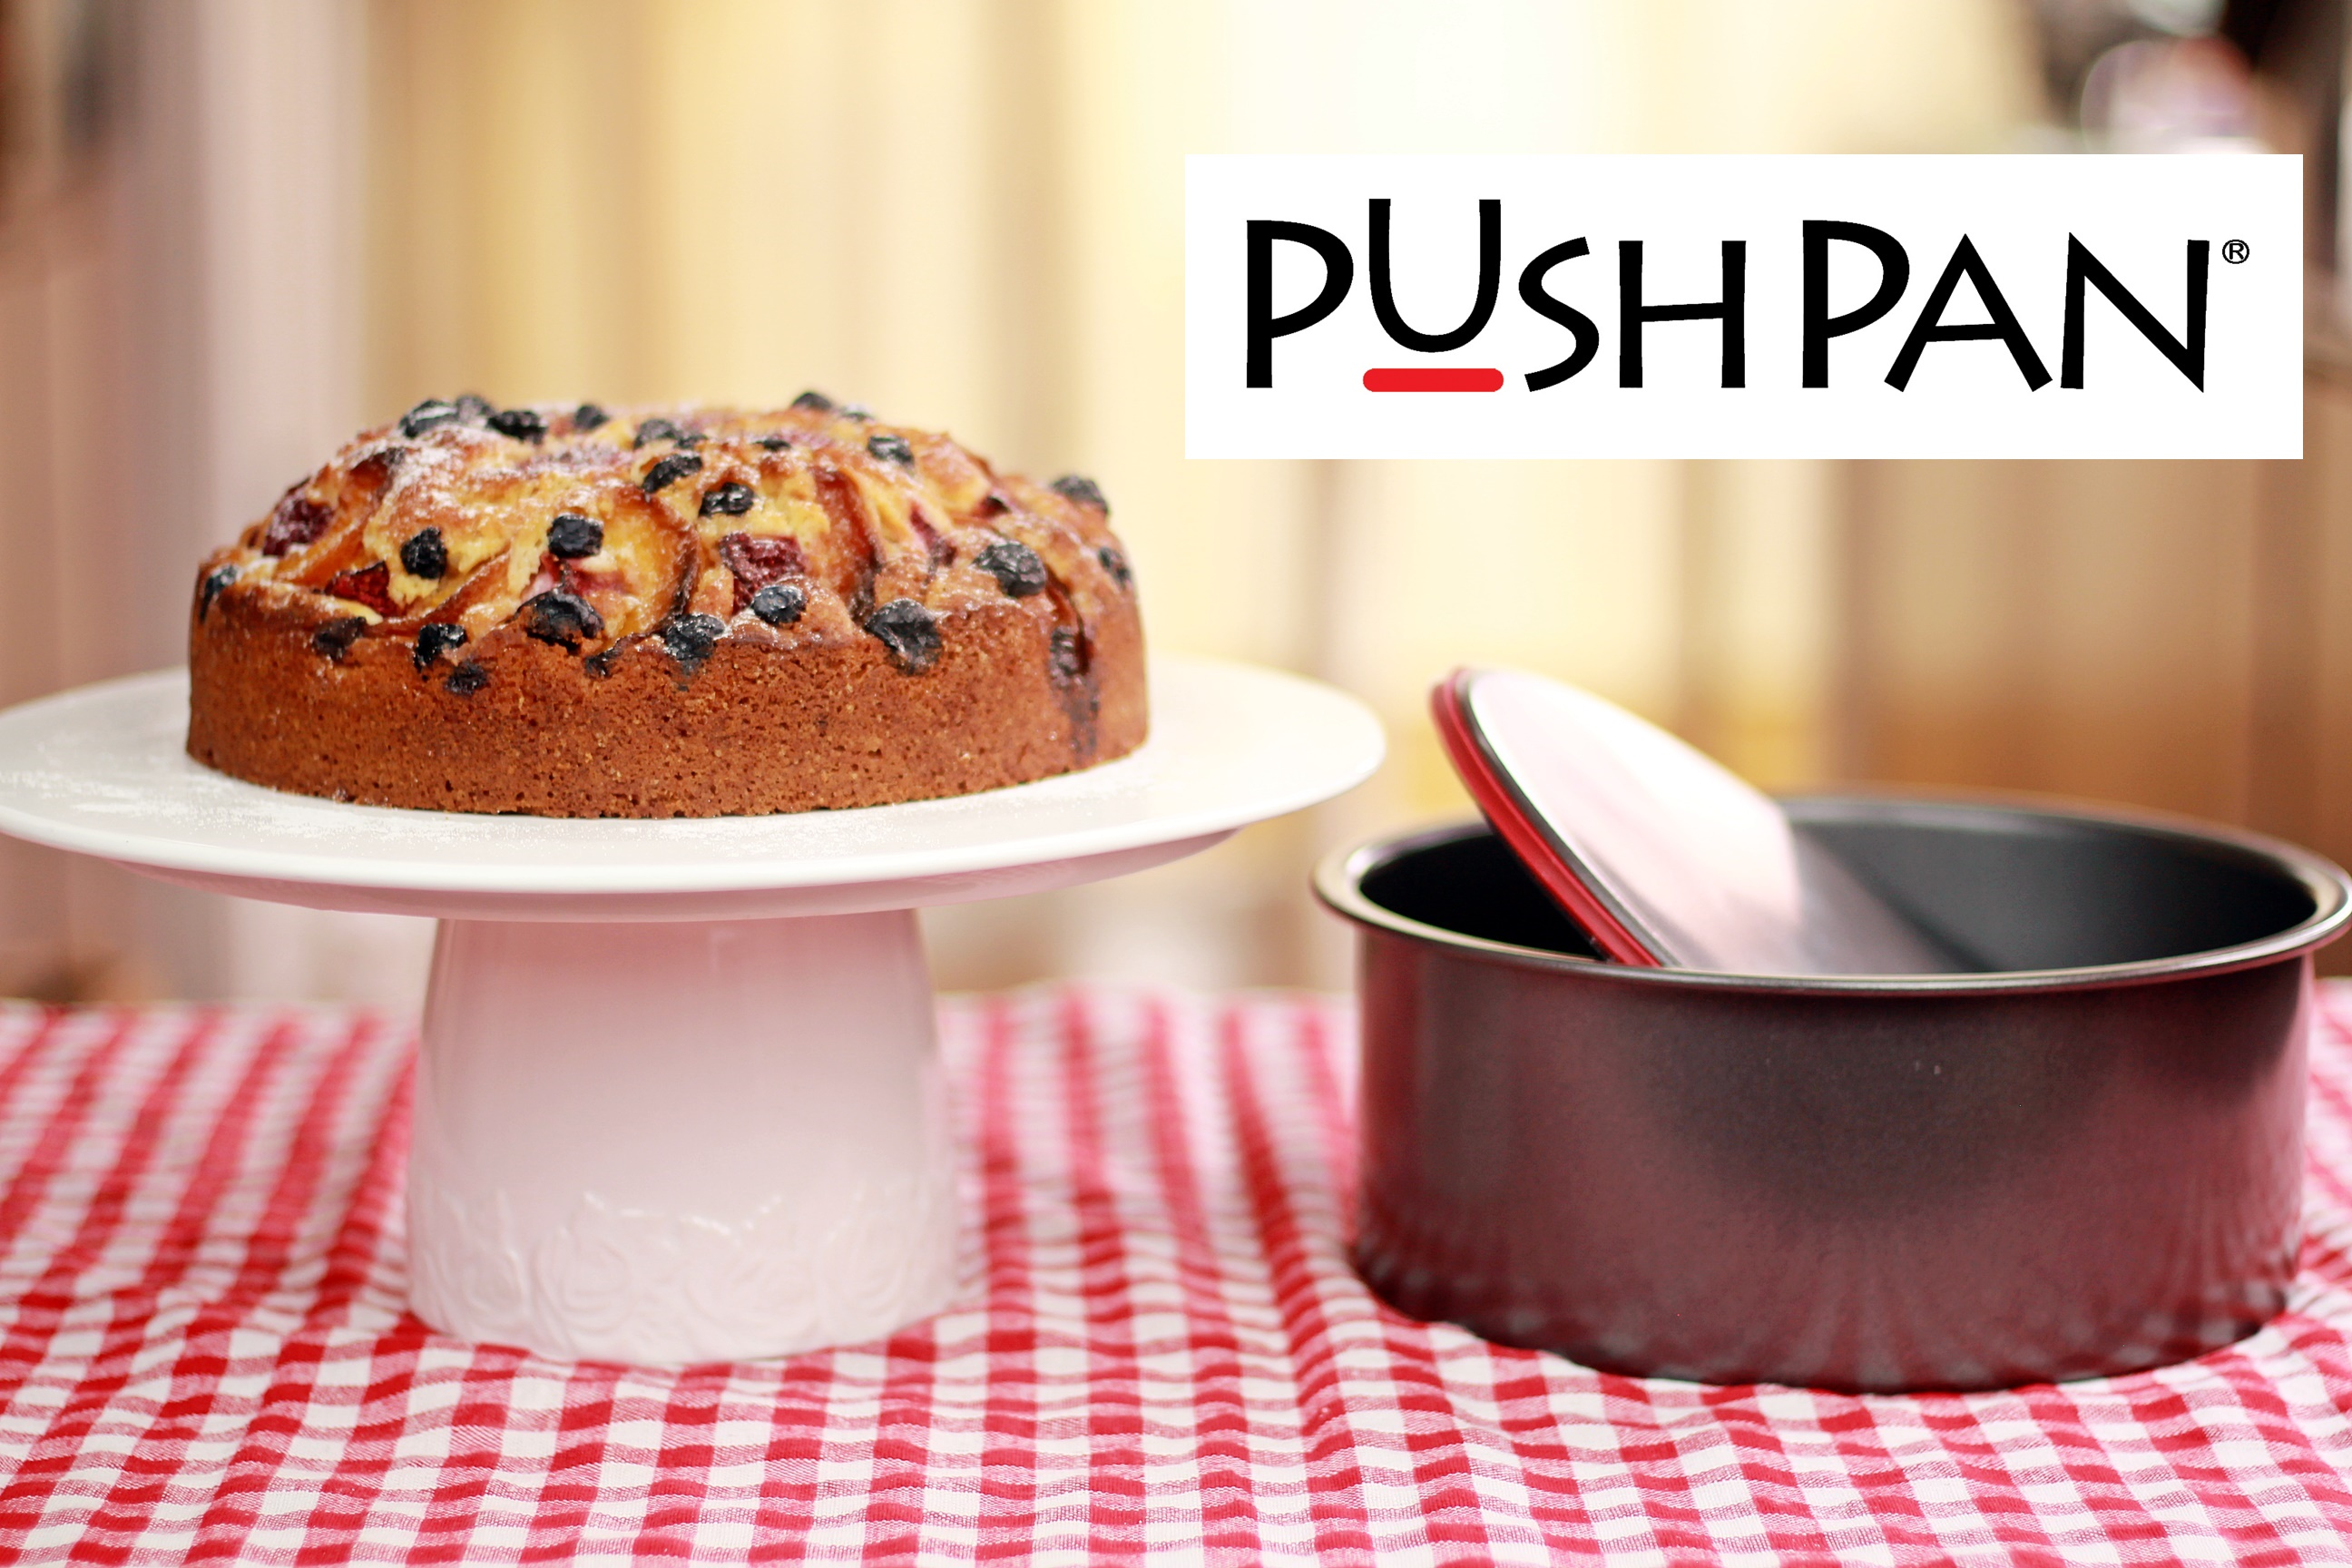 Fruit Pastry Cake with PushPan